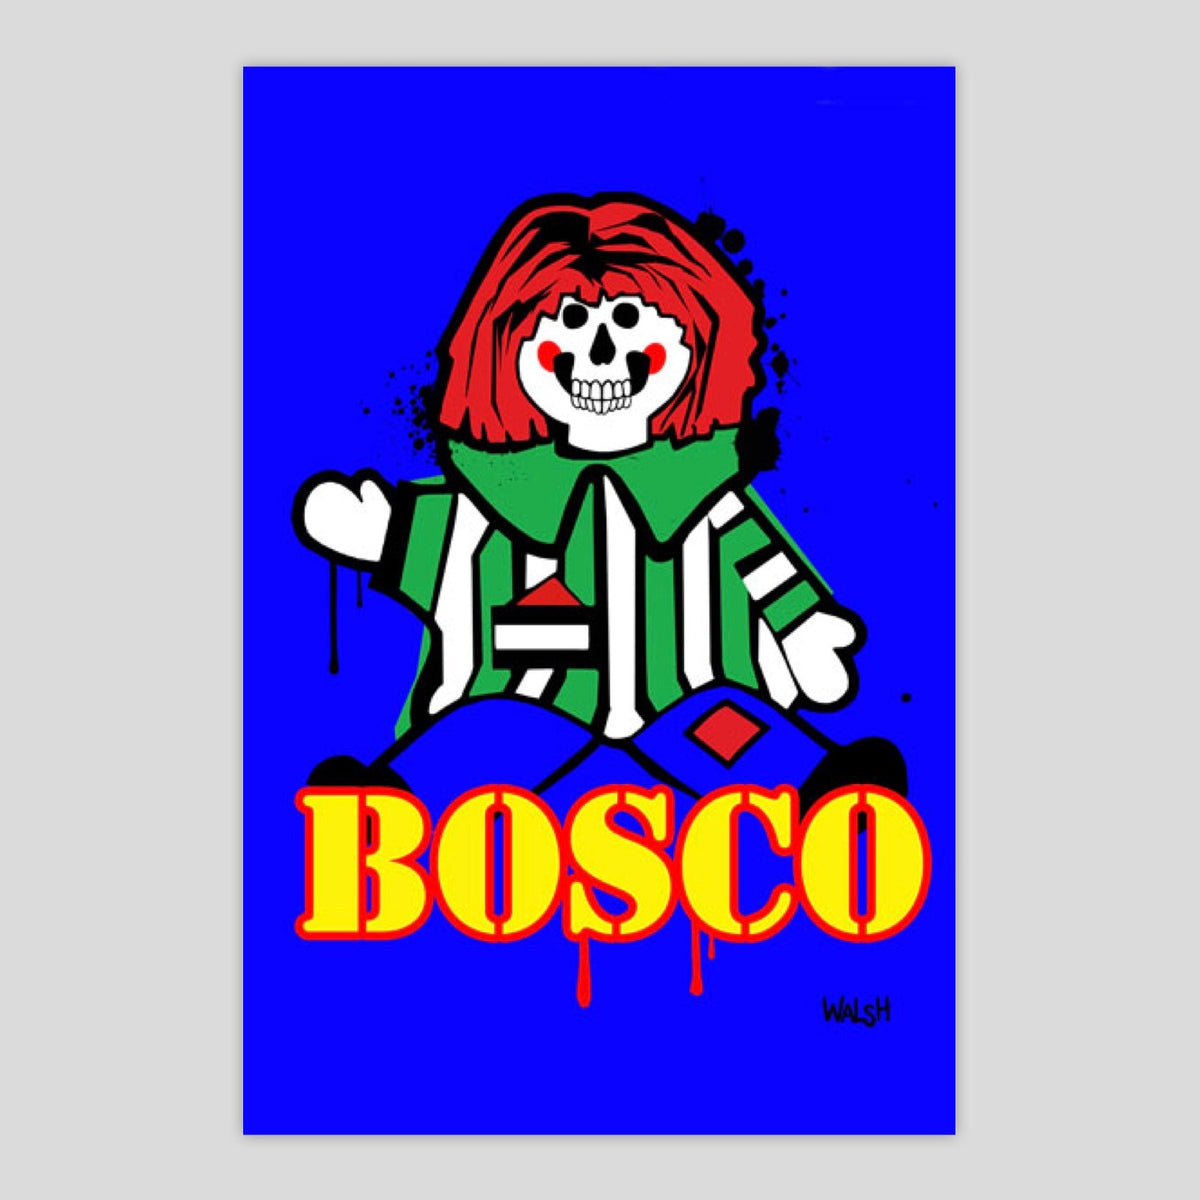 Bosco's Totally Deadly